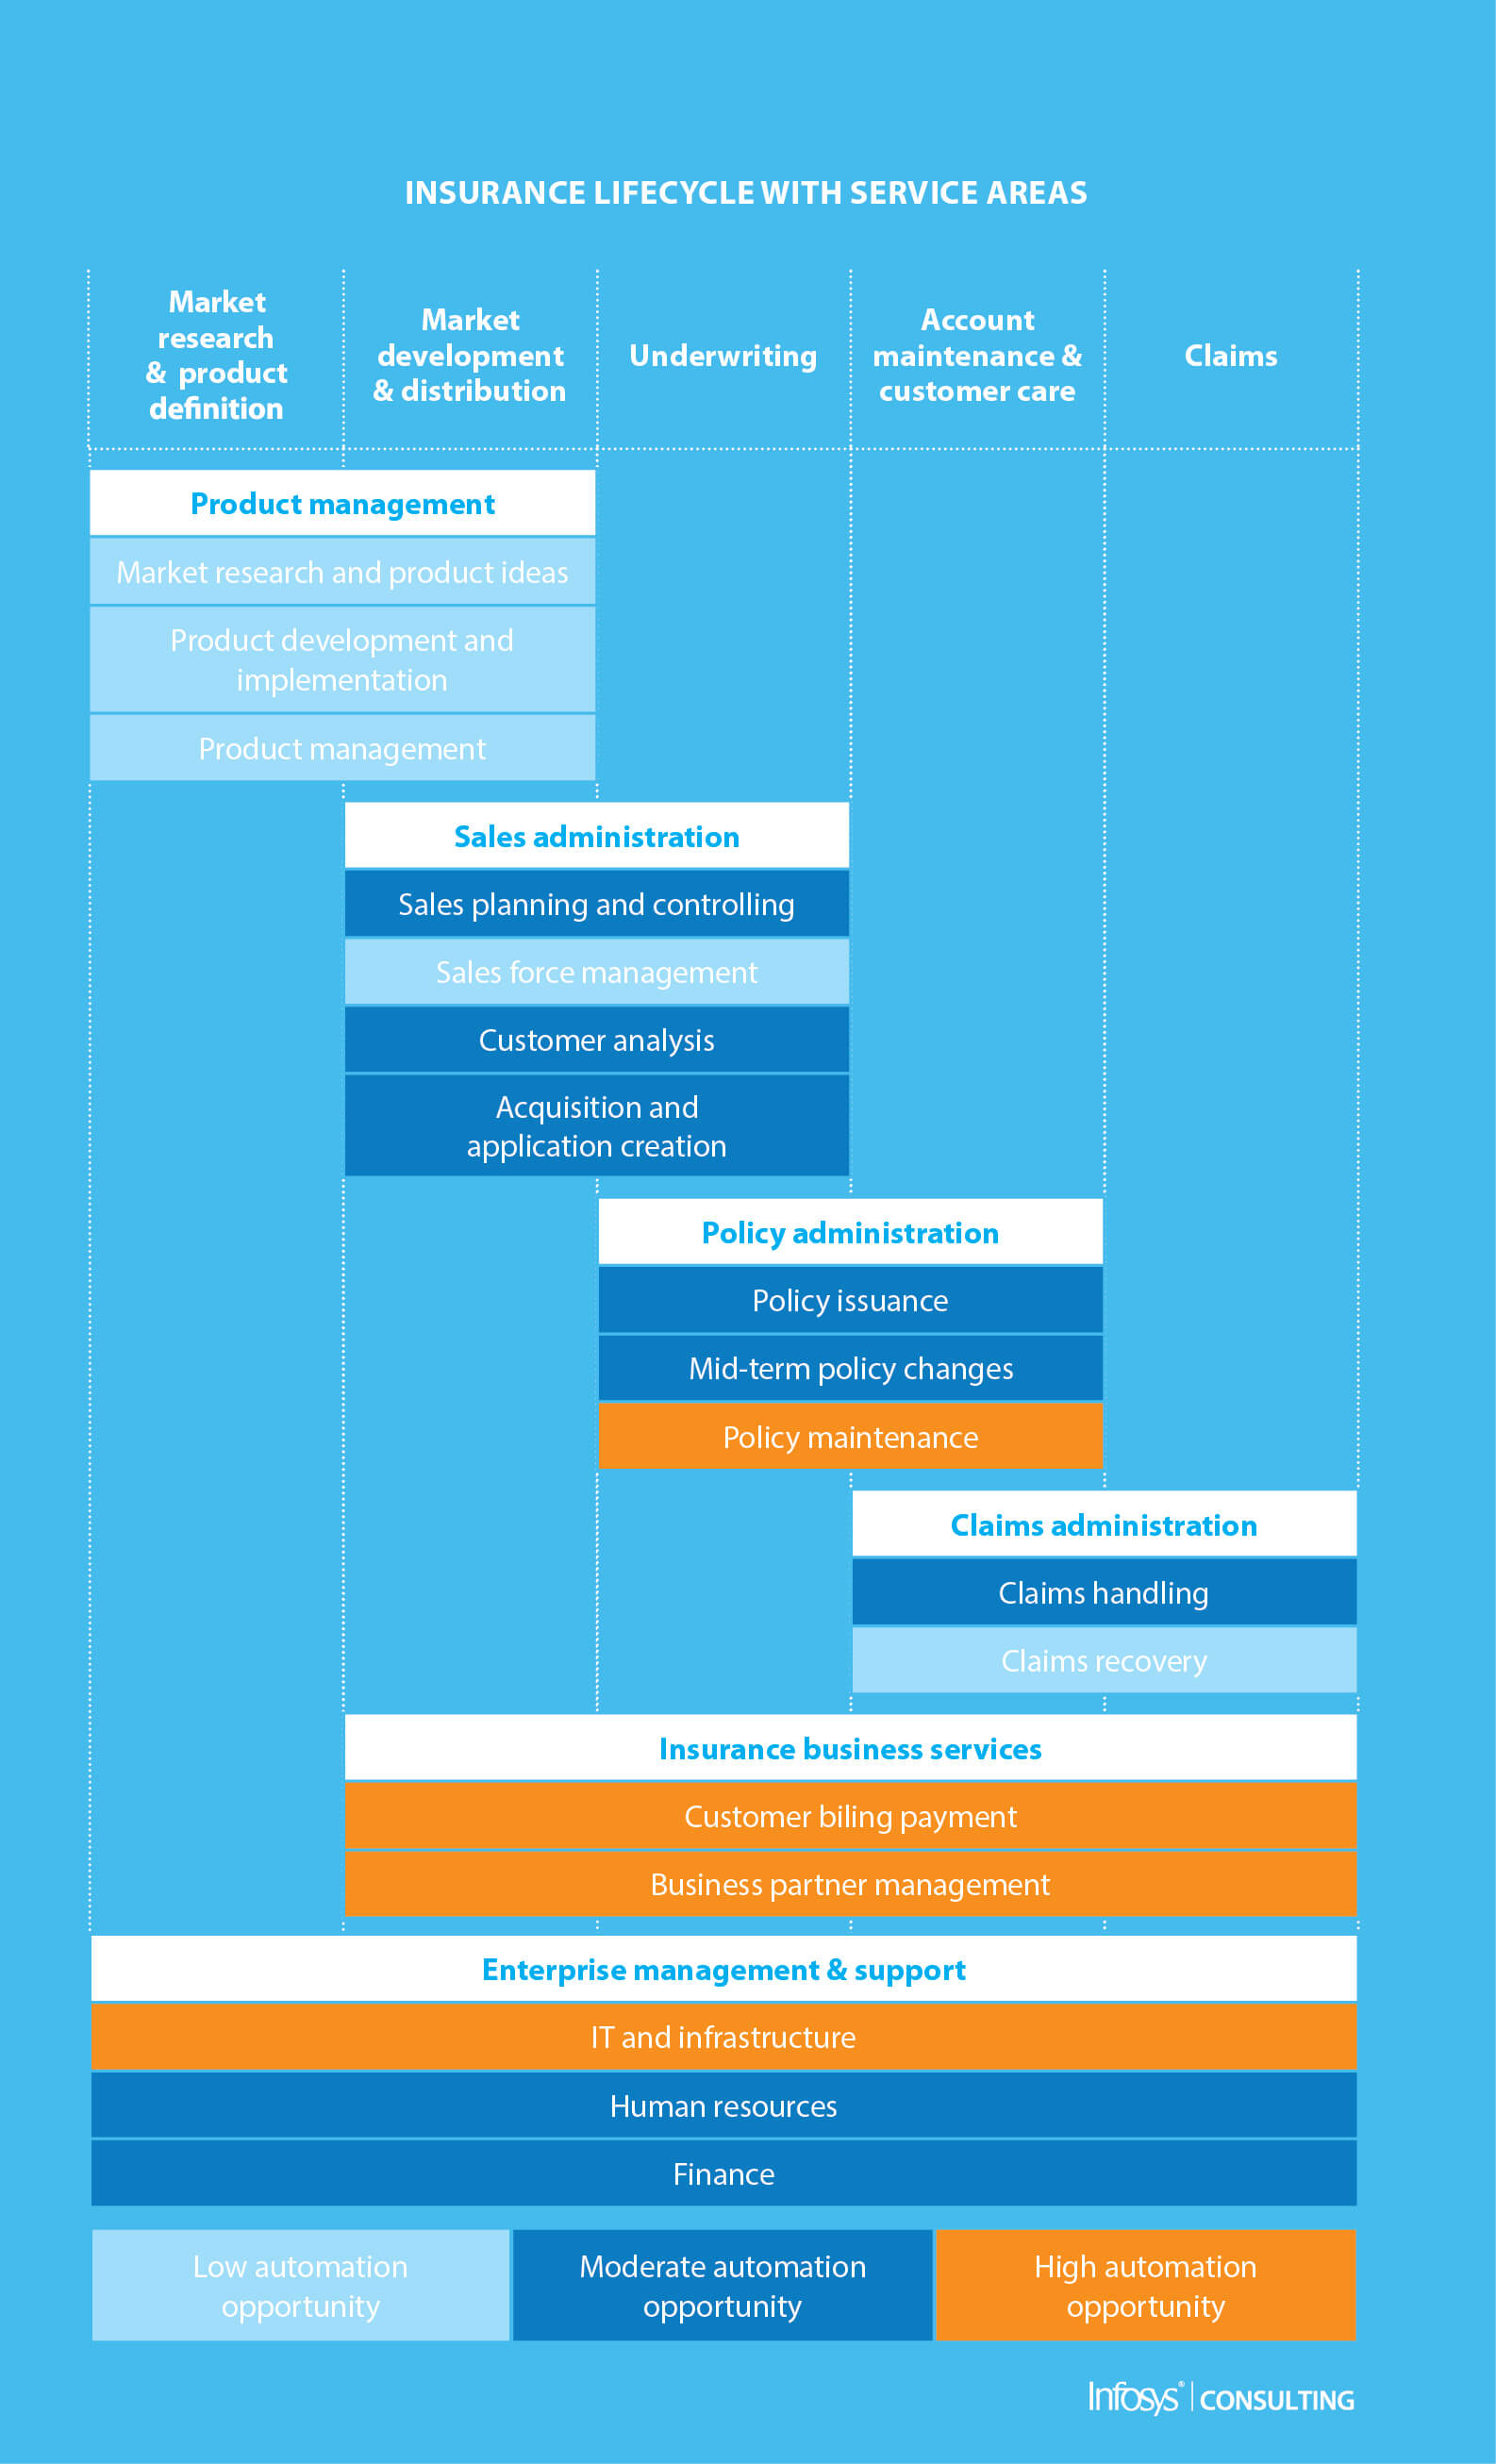 Robotic Process Automation - Infosys Consulting - One hub